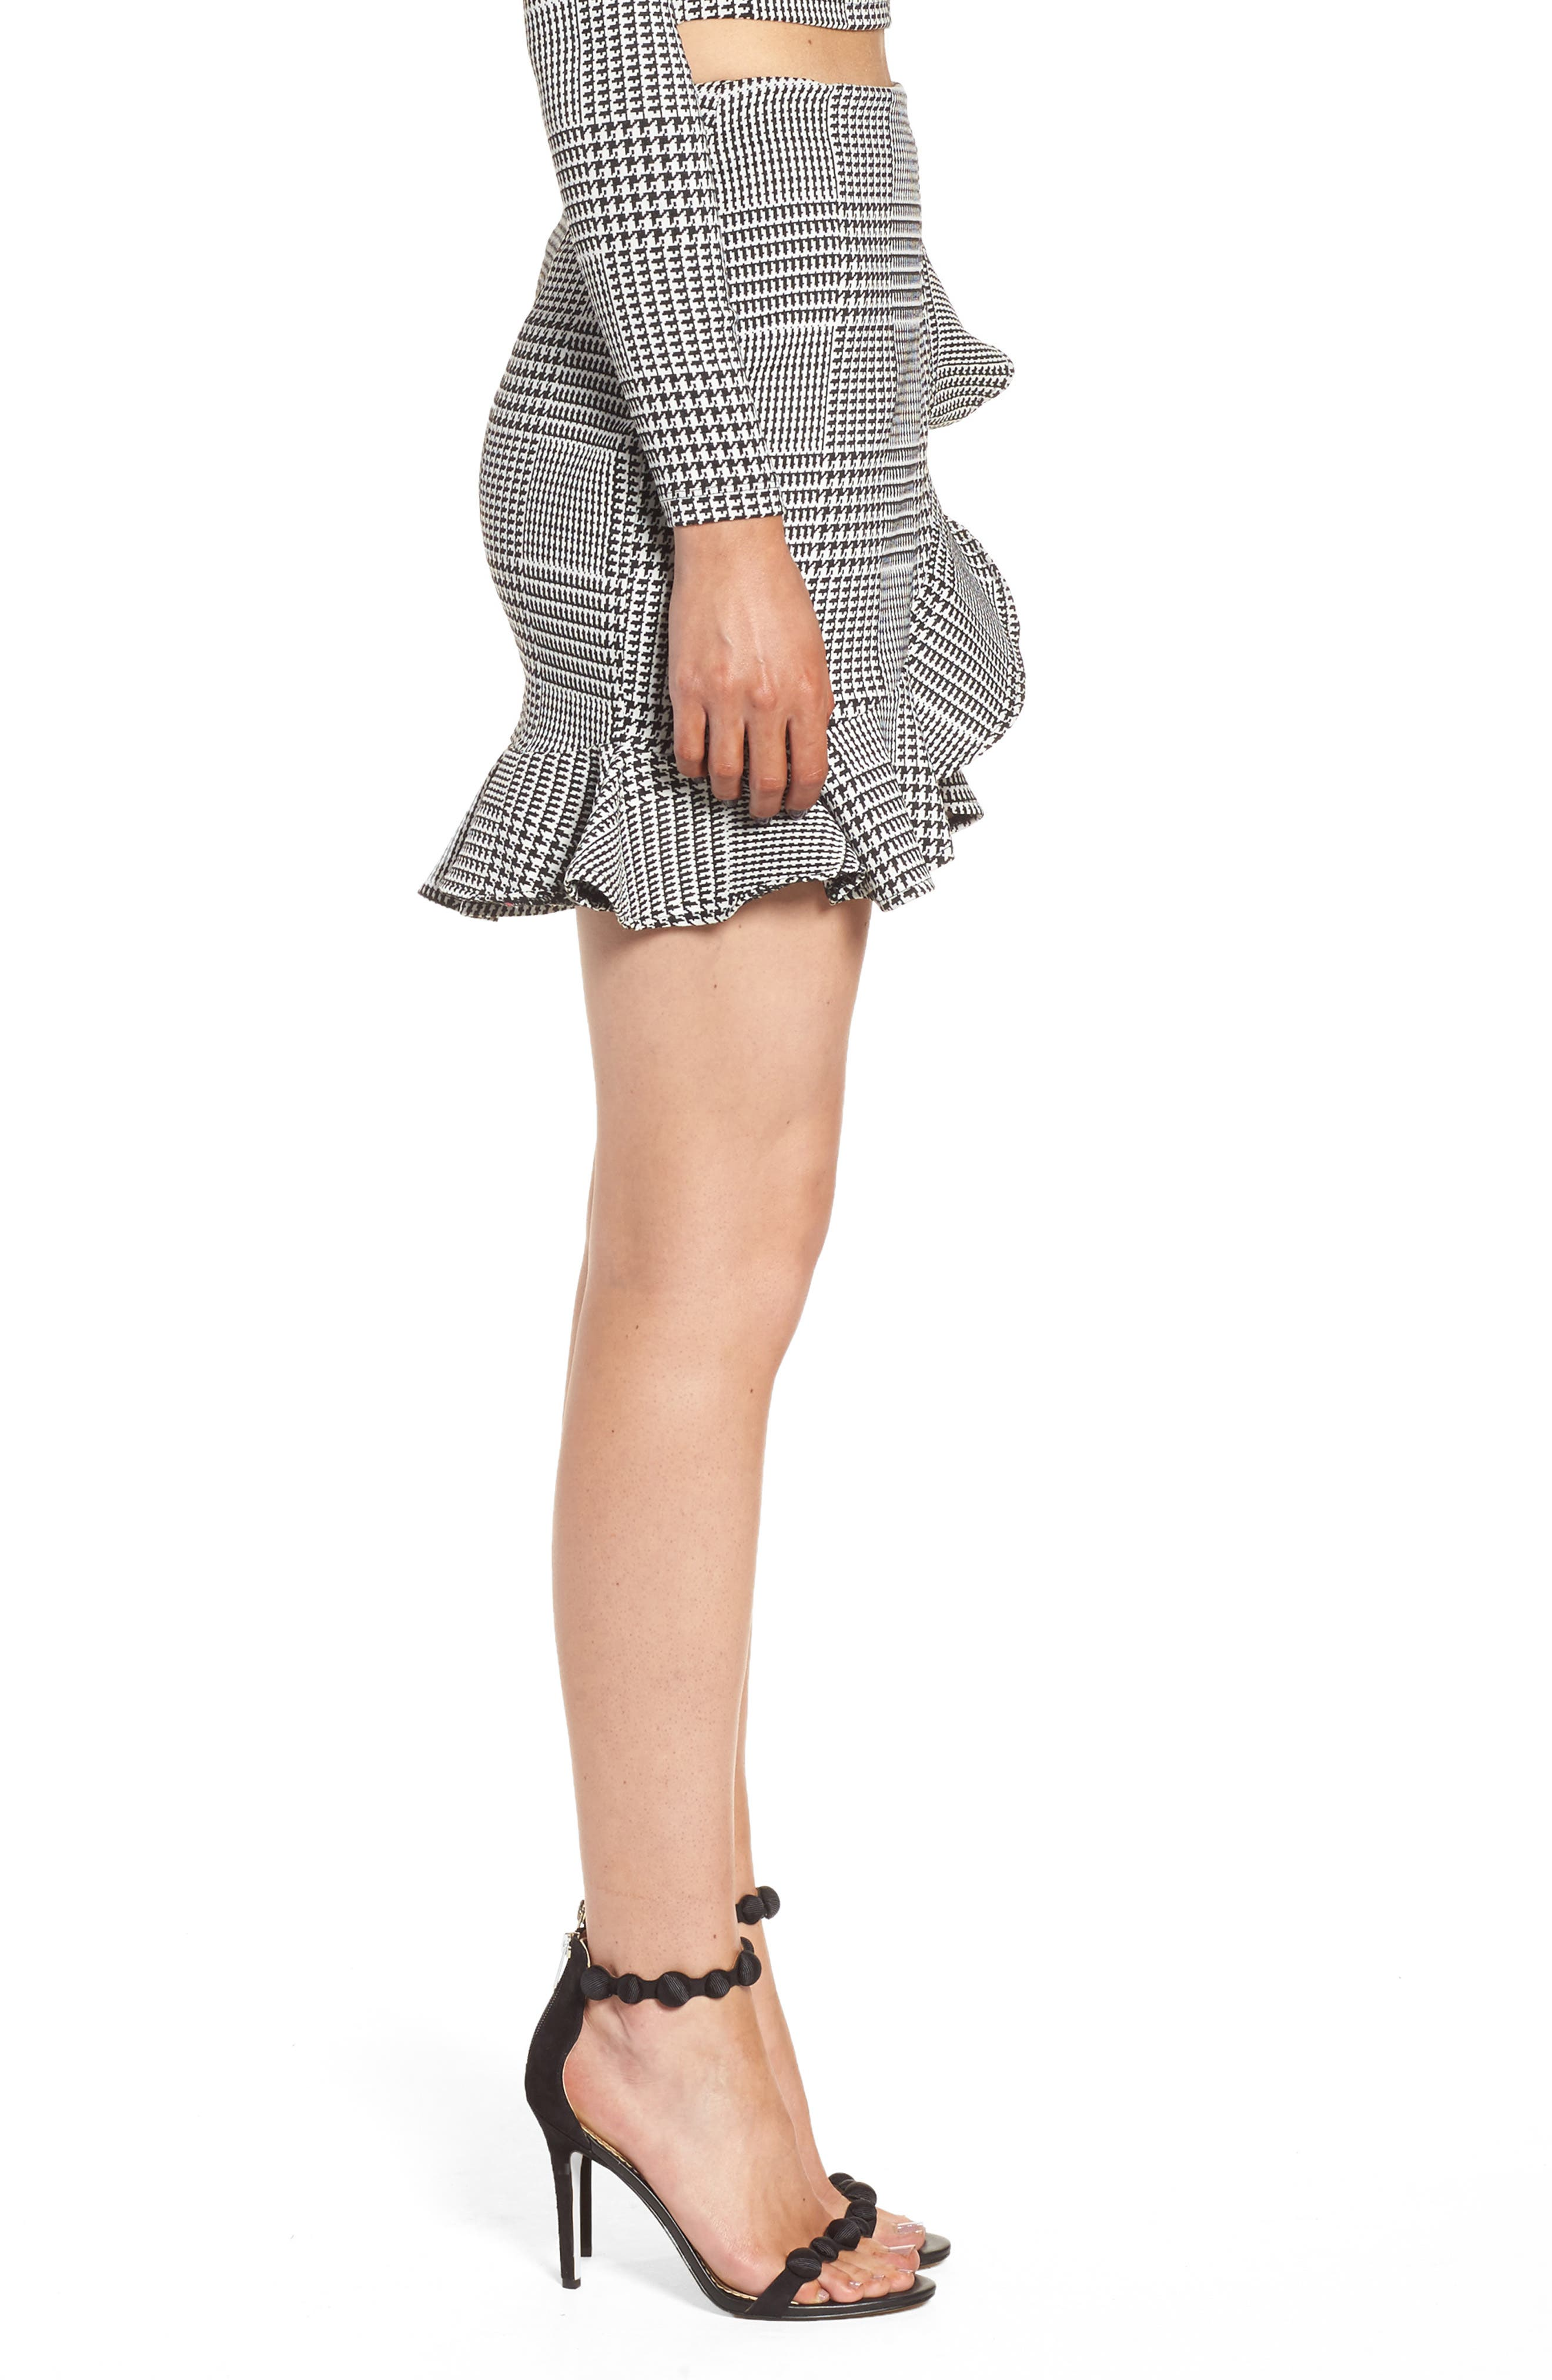 Affection Ruffle Houndstooth Skirt,                             Alternate thumbnail 4, color,                             Houndstooth Plaid